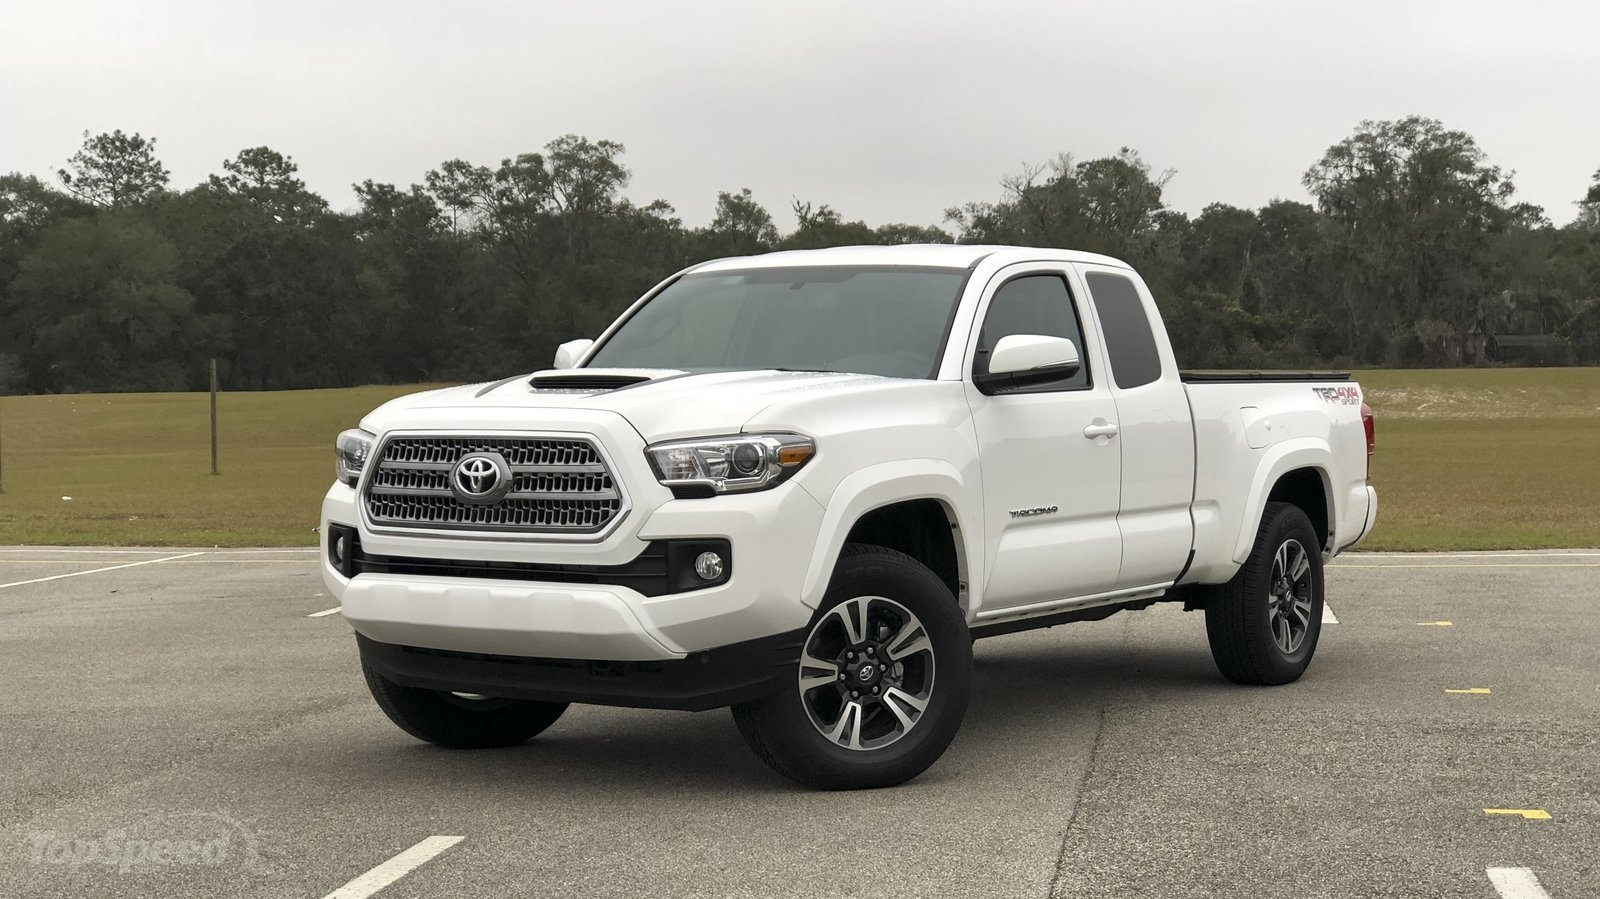 hight resolution of 4w drive toyotum tacoma